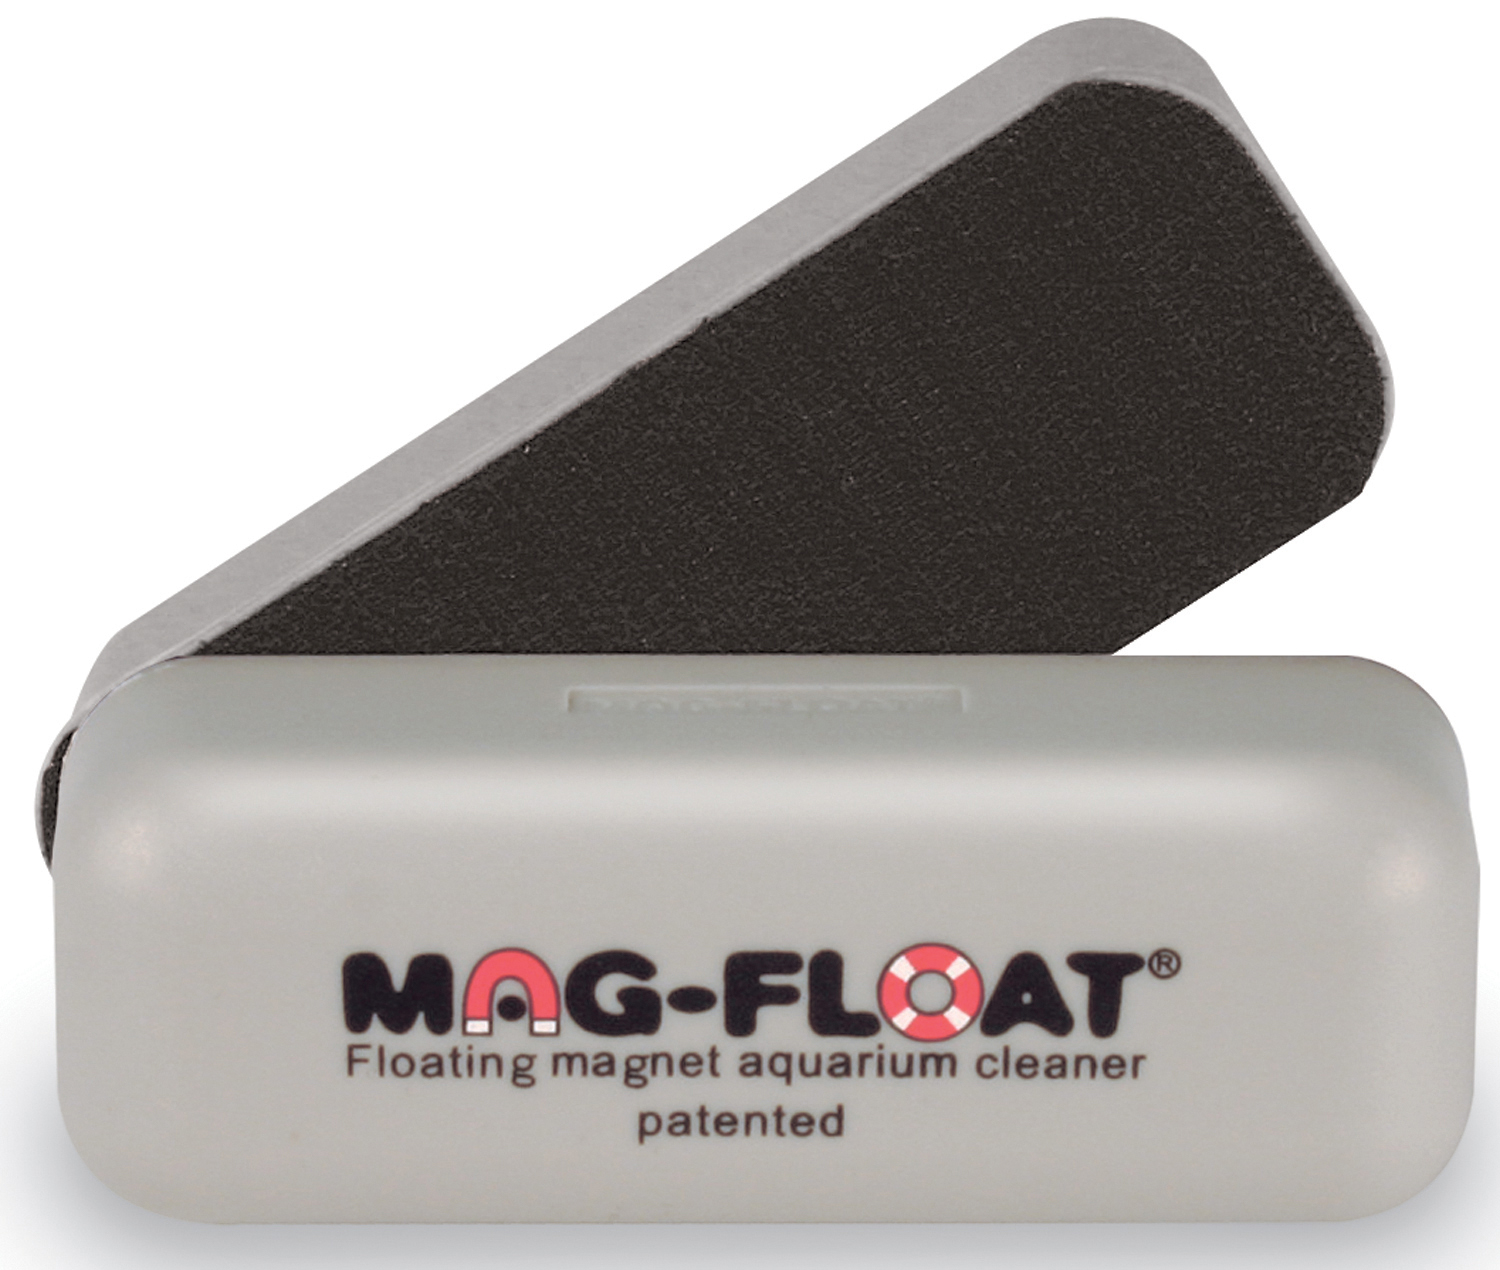 MAG-FLOAT 125 GLASS CLEANER - My Pet Store and More